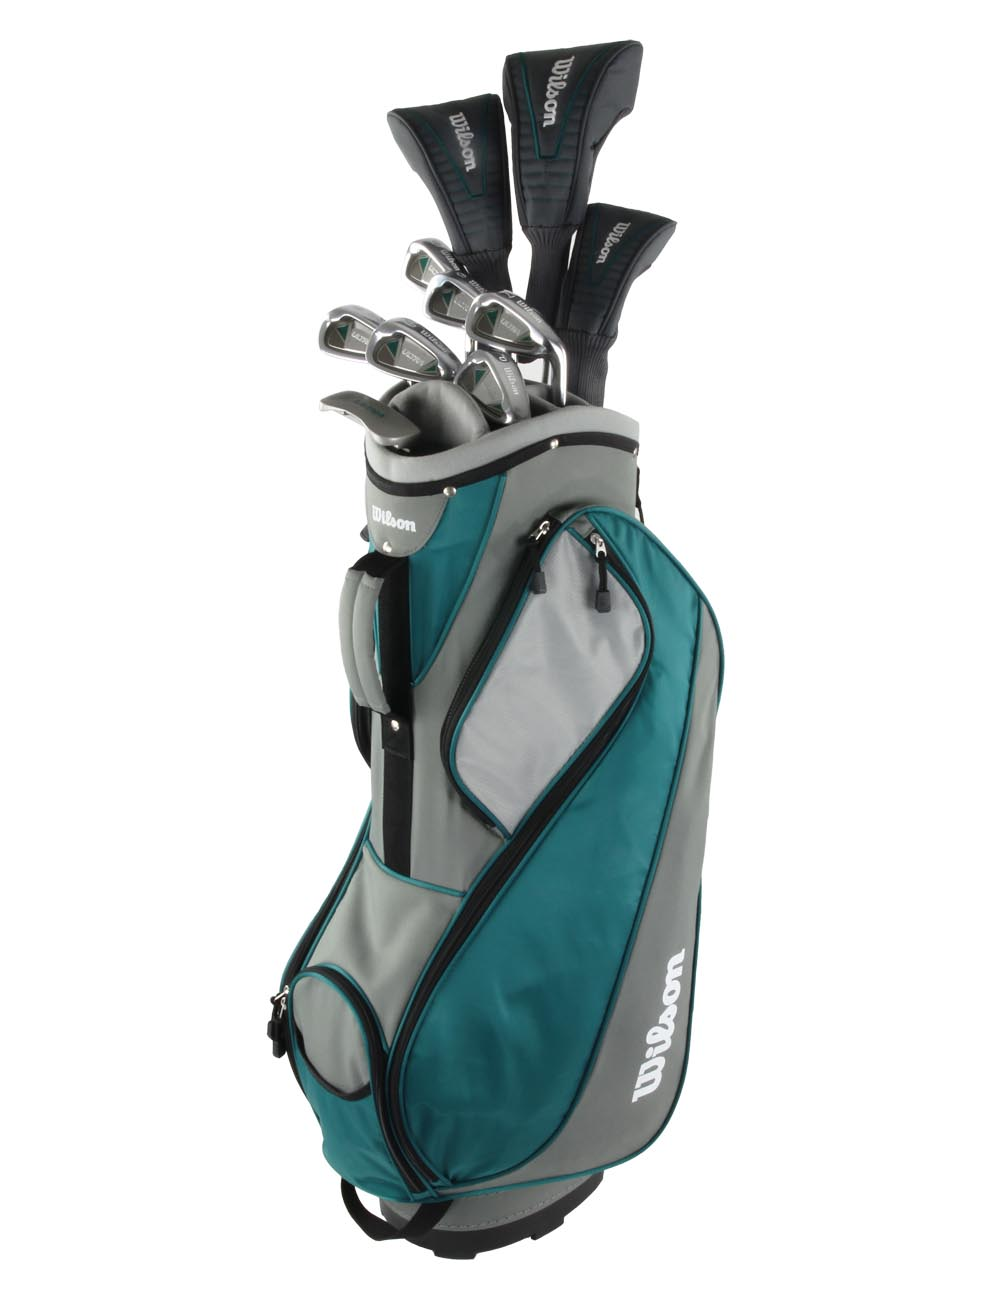 Wilson Ultra Ladies Right Handed Golf Club Set w/ Bag - Teal